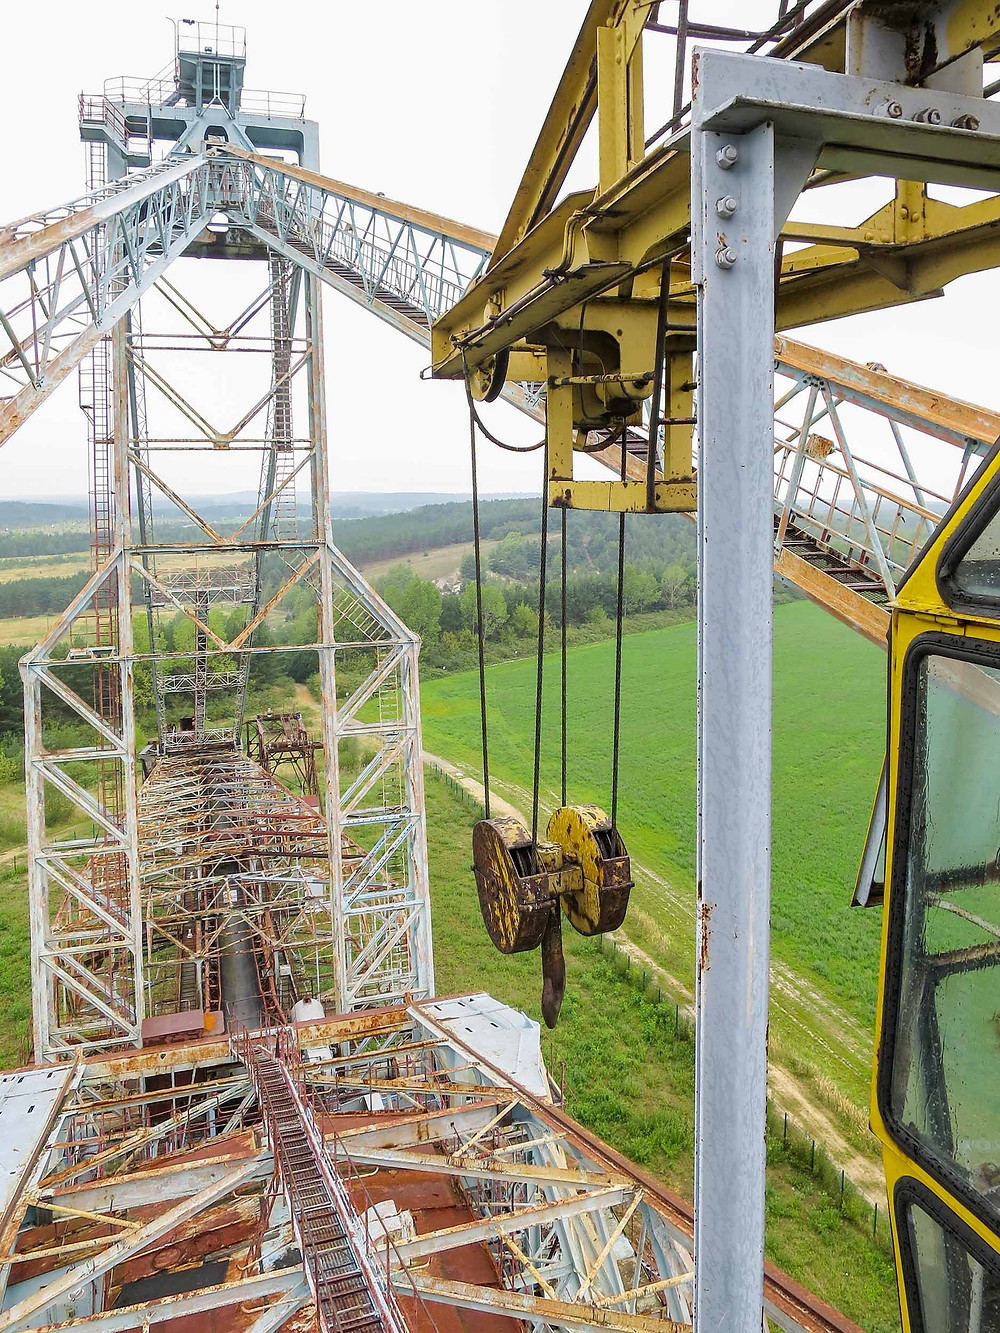 View from crane at abandoned bucket wheel excavator